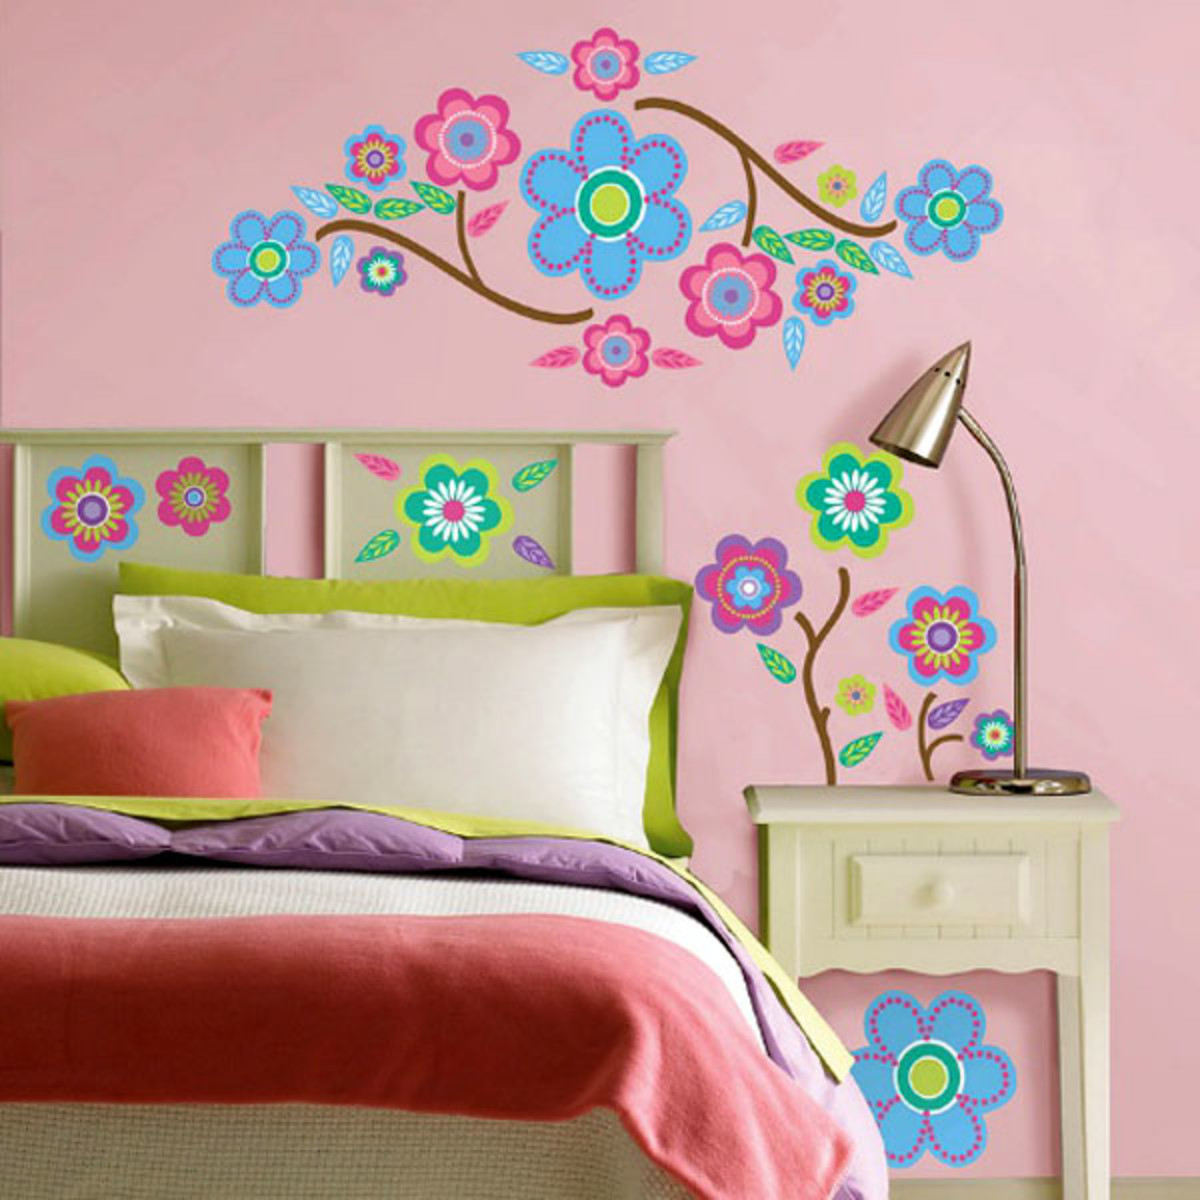 Wall decals are an easy way to create art that can be moved around  or replaced with another design.